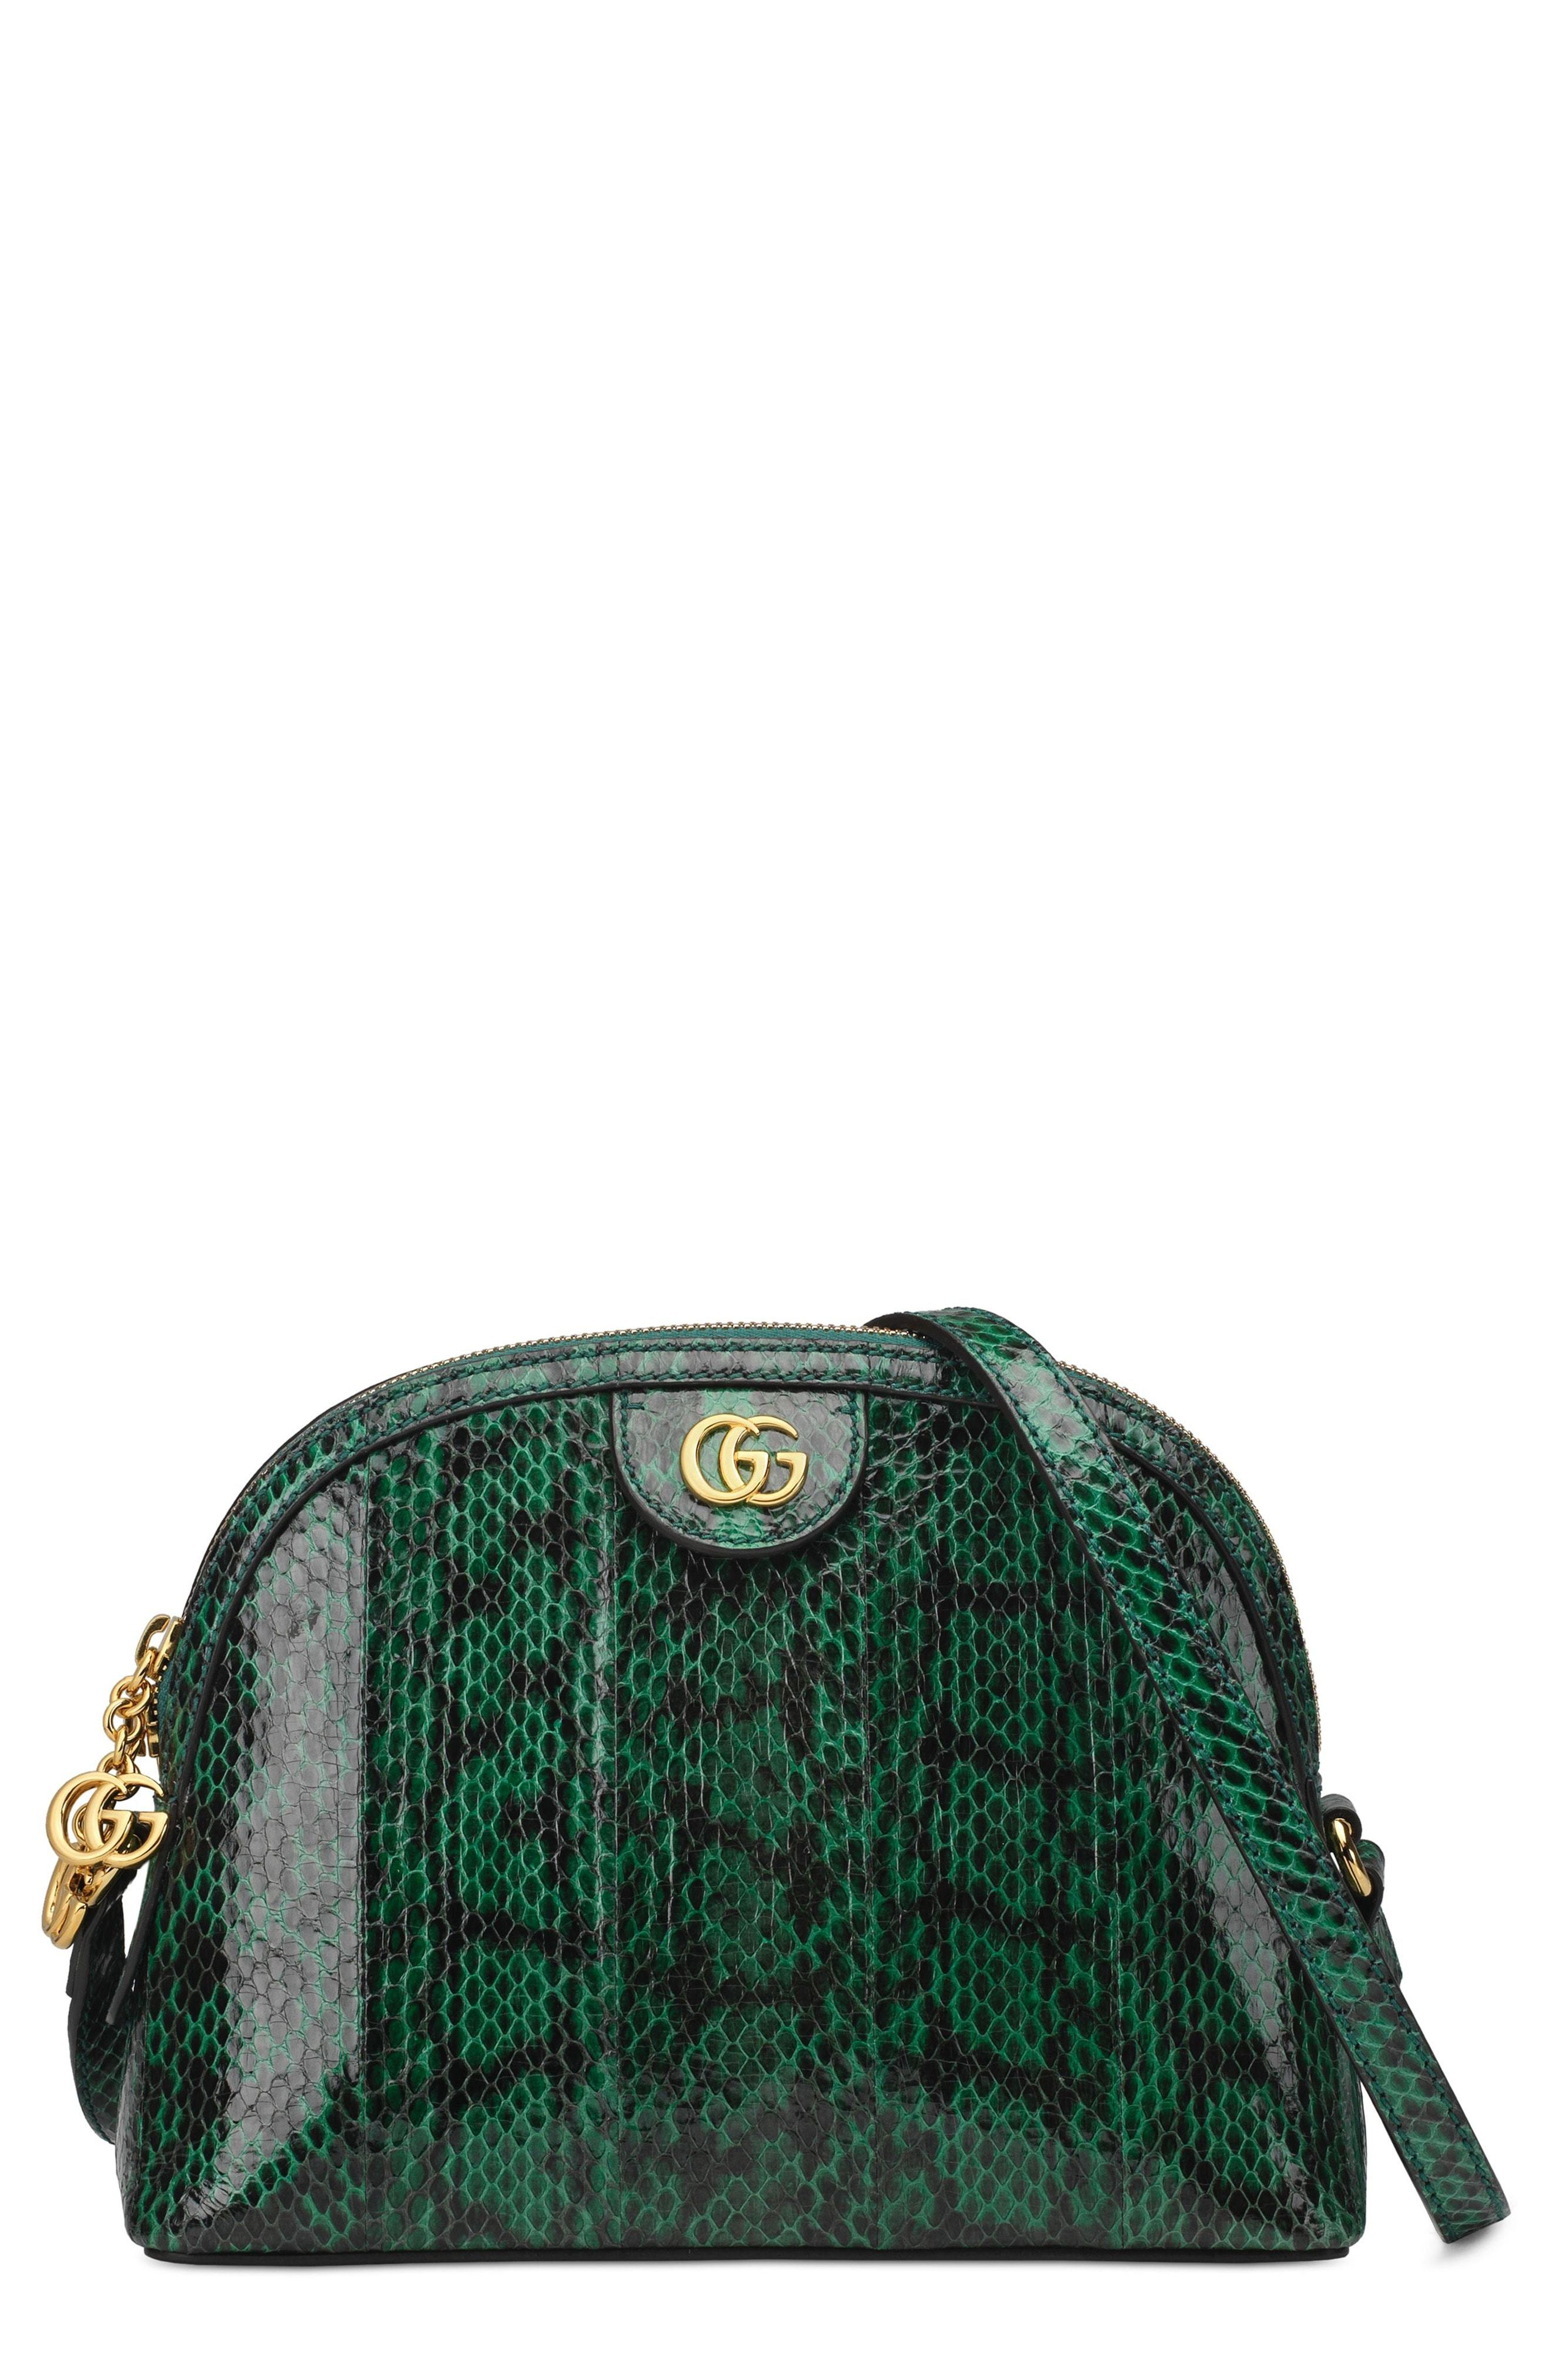 17c332811e384c Gucci Small Ophidia Genuine Snakeskin Dome Satchel, $3,300 ...